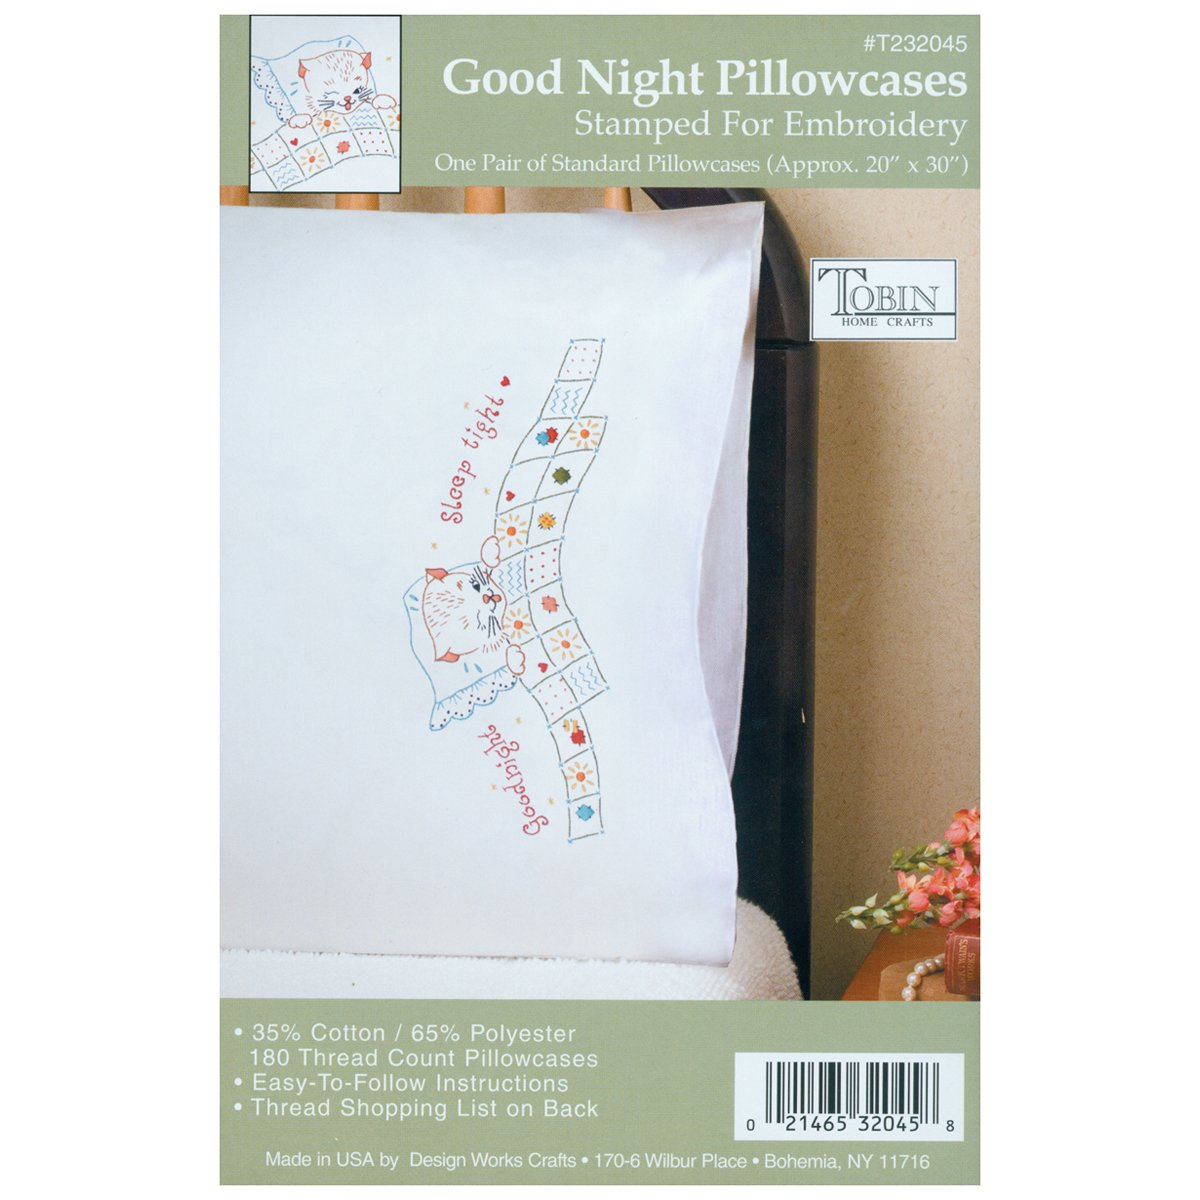 Tobin Stamped Pillowcase Pair Stamped Cross Stitch Kit for Embroidery, 20 by 30-Inch, Good Night T232045